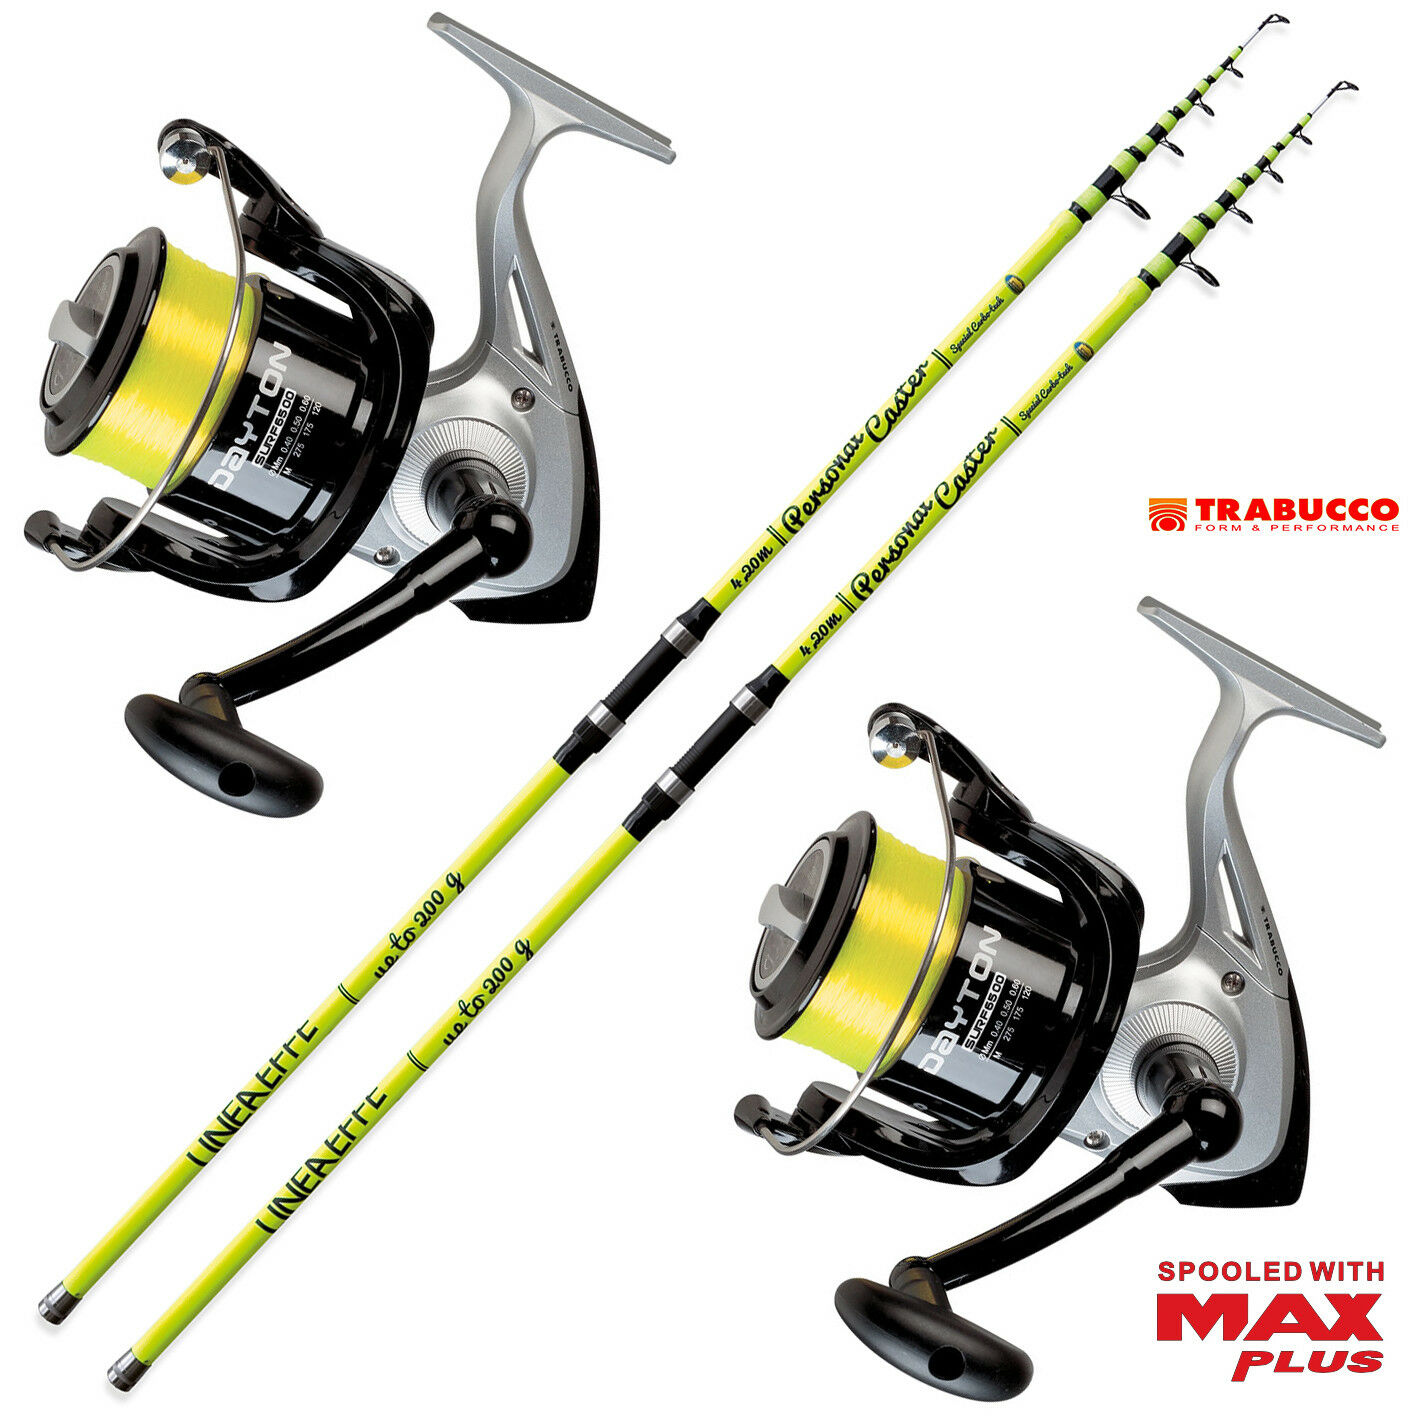 KP3514 2 Canna pesca Surf Personal caster 420 2 Mulinello Trabucco 6500  RNG